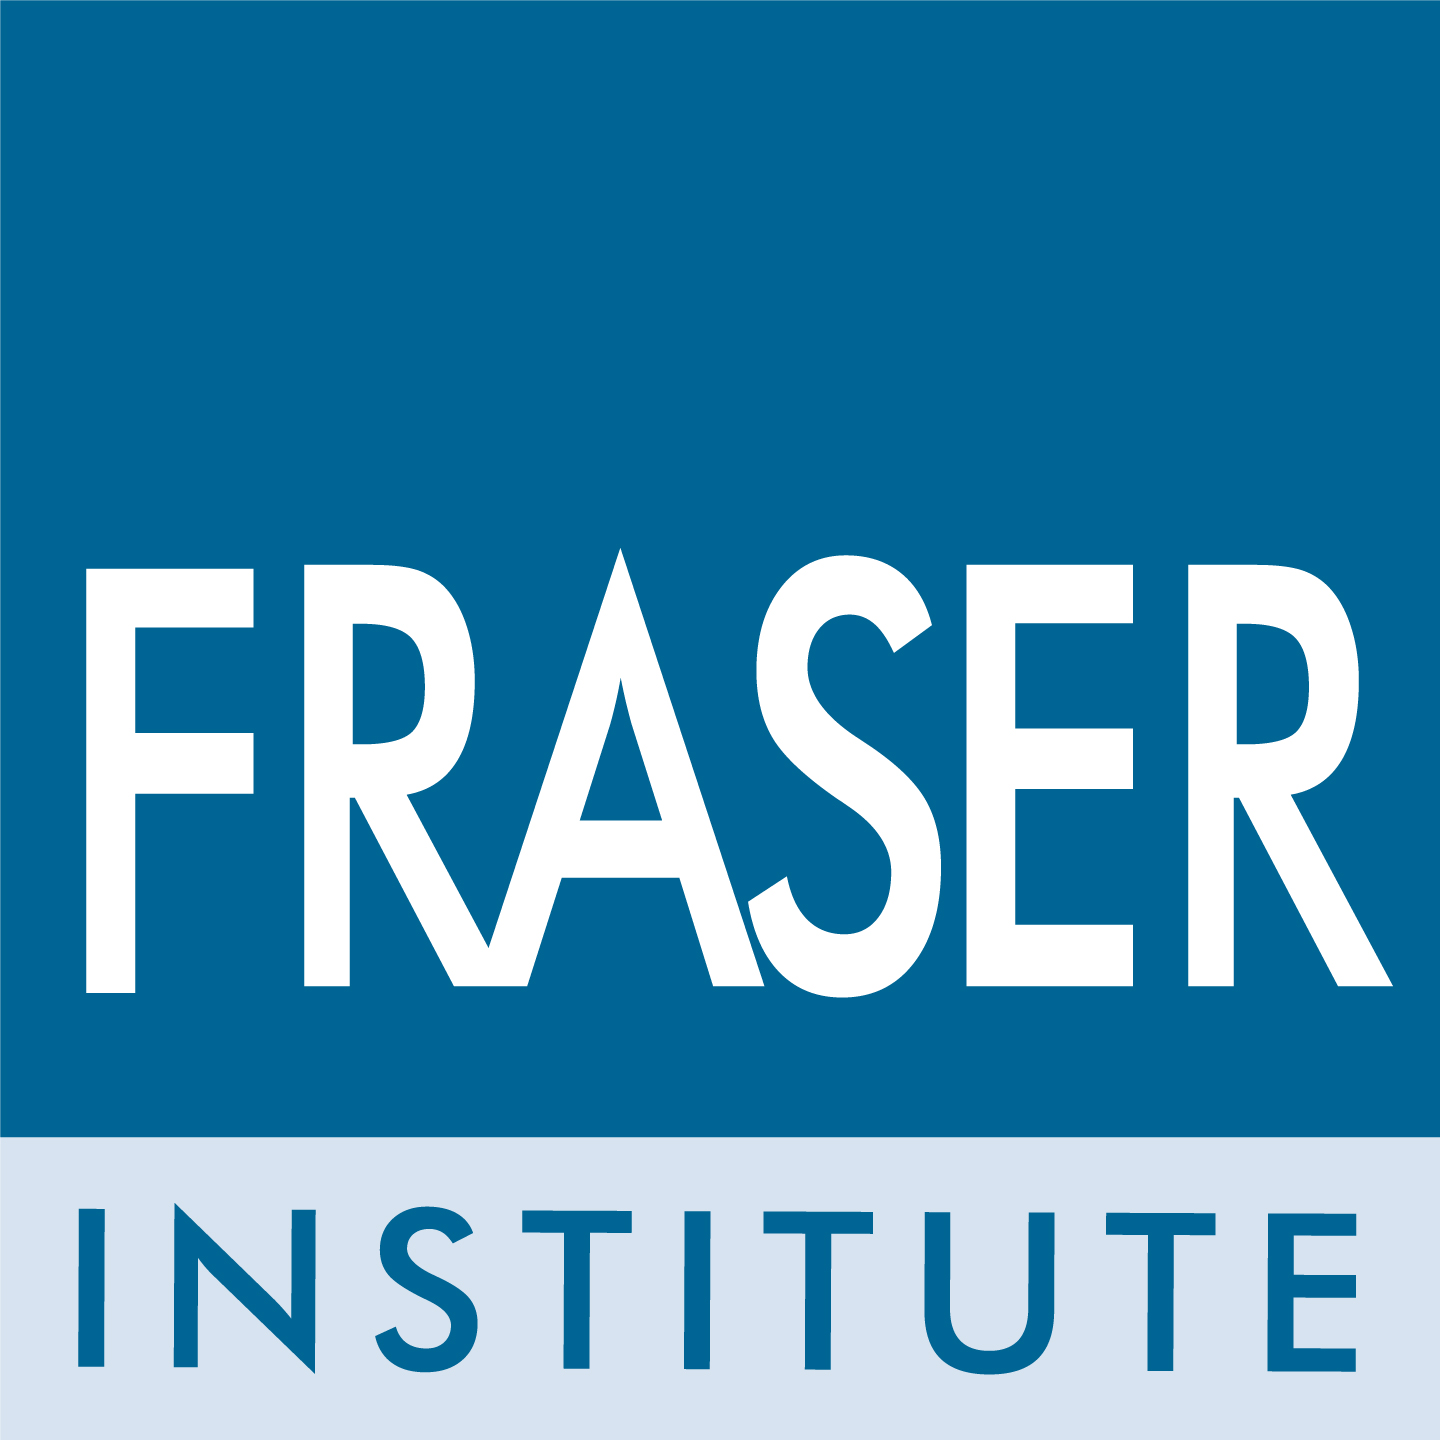 Fraser Institute News Release: Canada's Combined Federal-Provincial Debt Will Reach $1